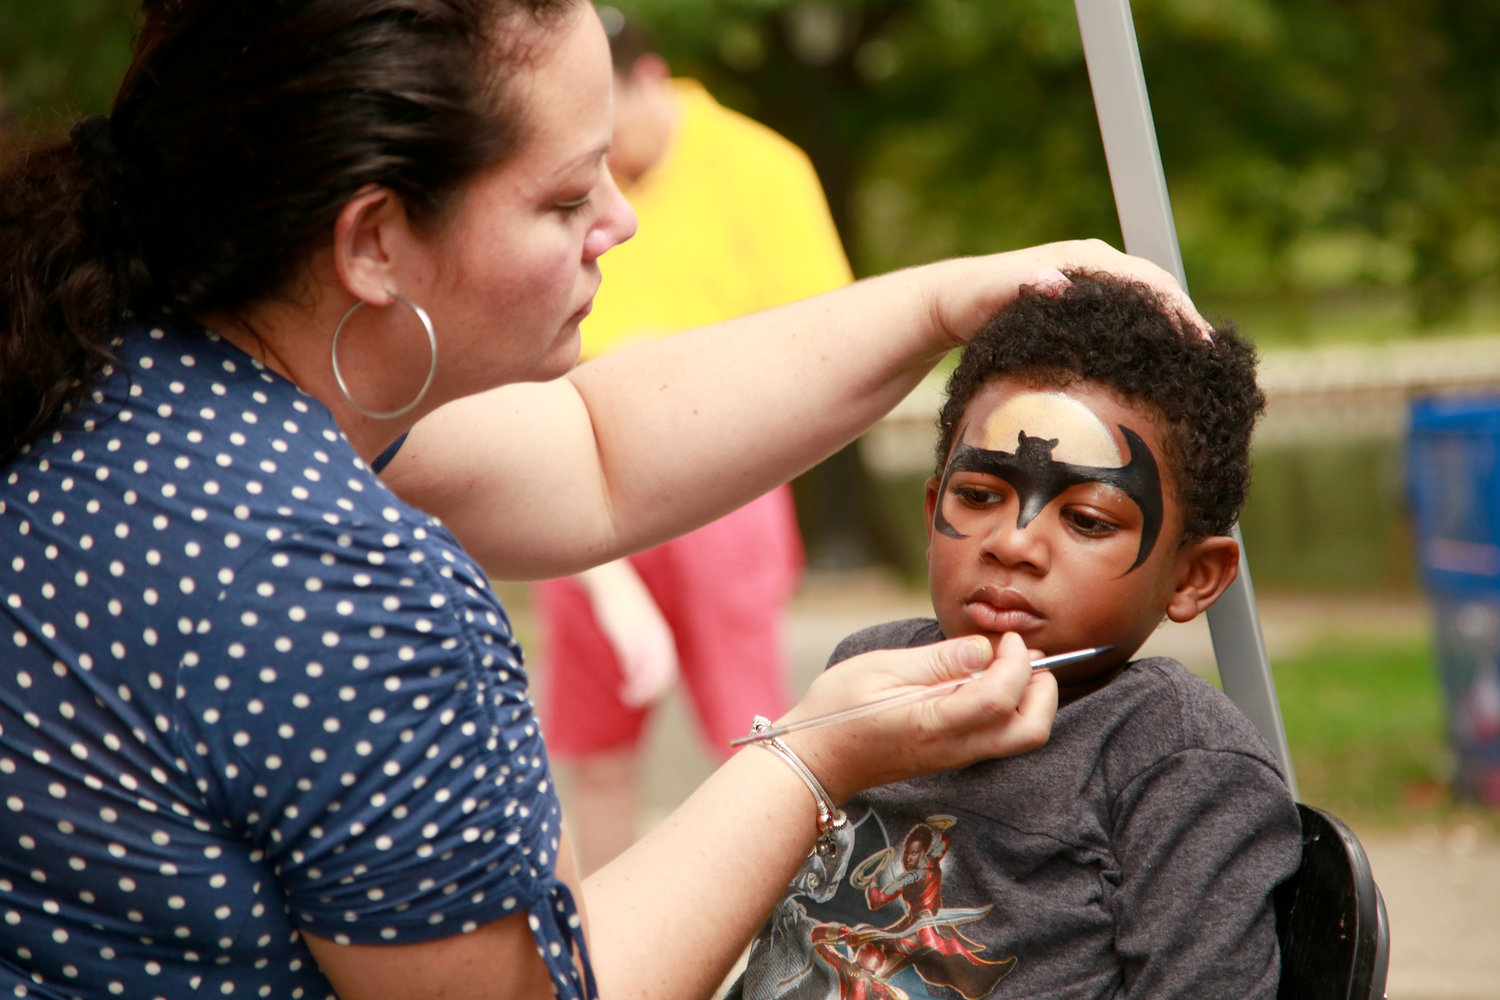 Natalie Hernandez painted a batman symbol on Elijah Sargeant, 4.